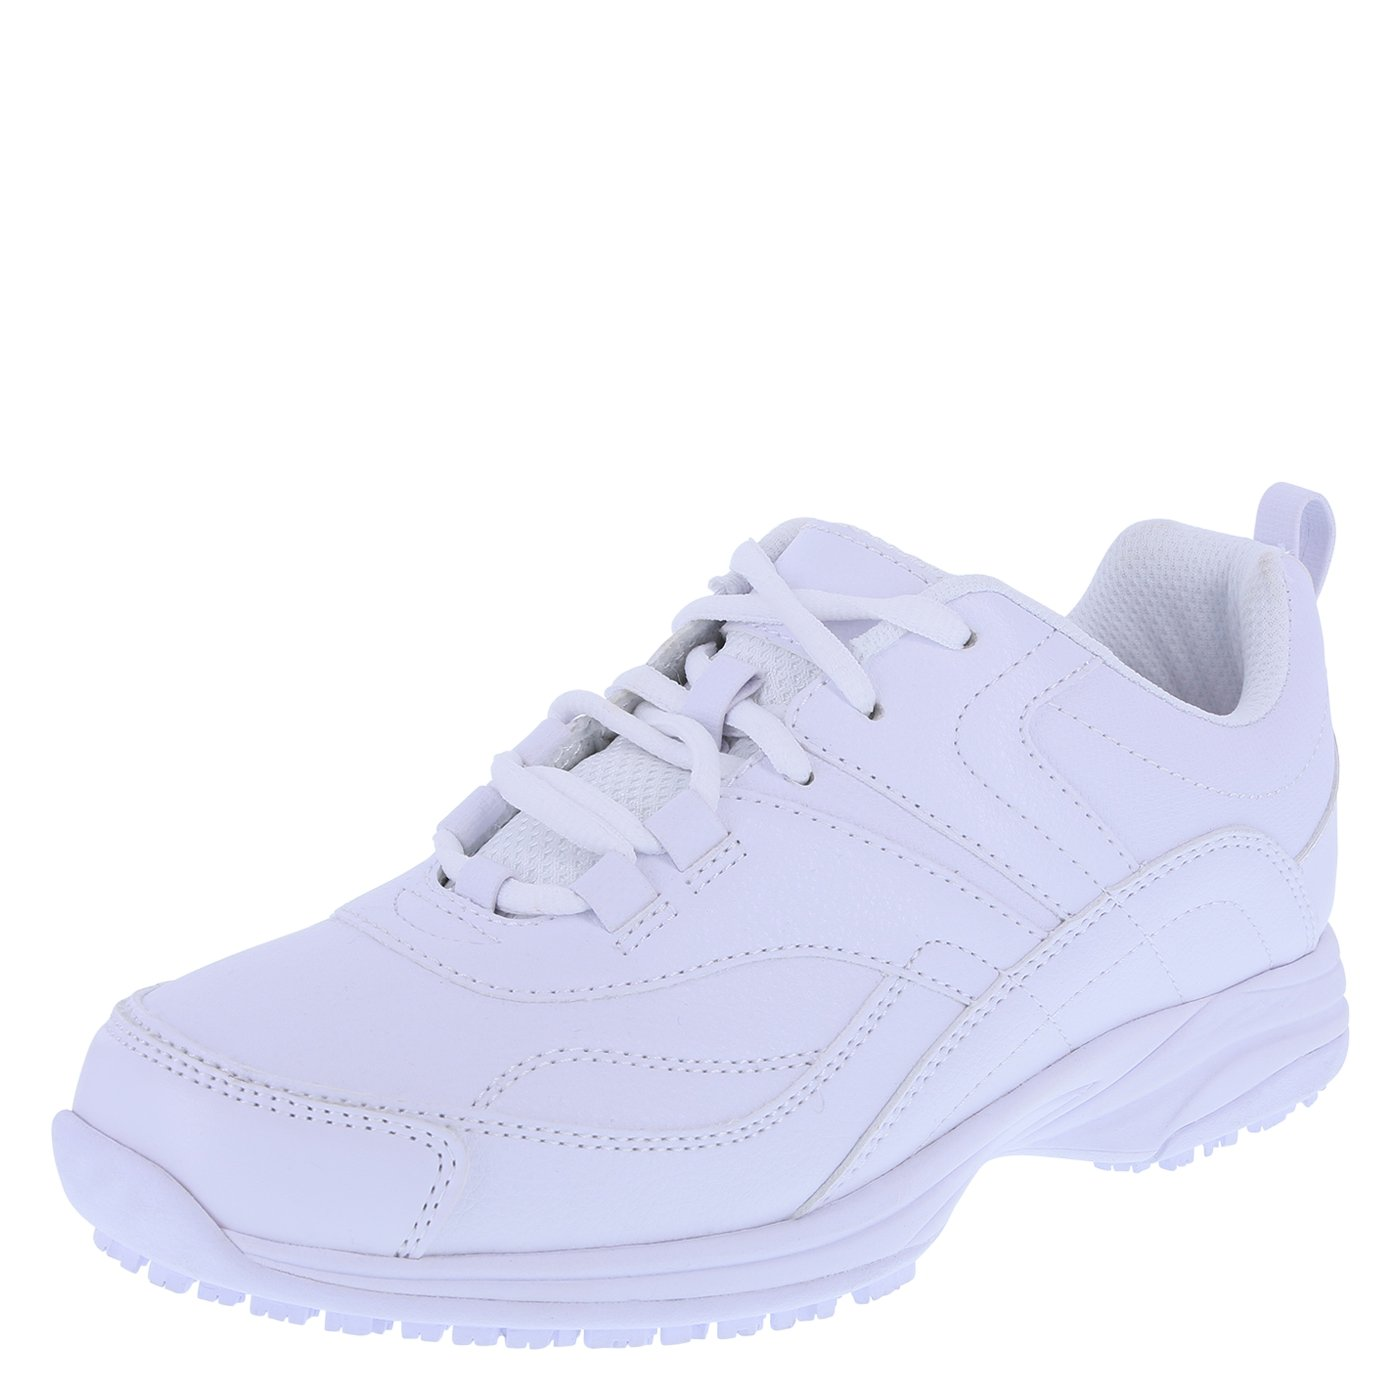 safeTstep Slip Resistant Women's Smooth White Women's Athena Sneaker 9.5 Wide by safeTstep